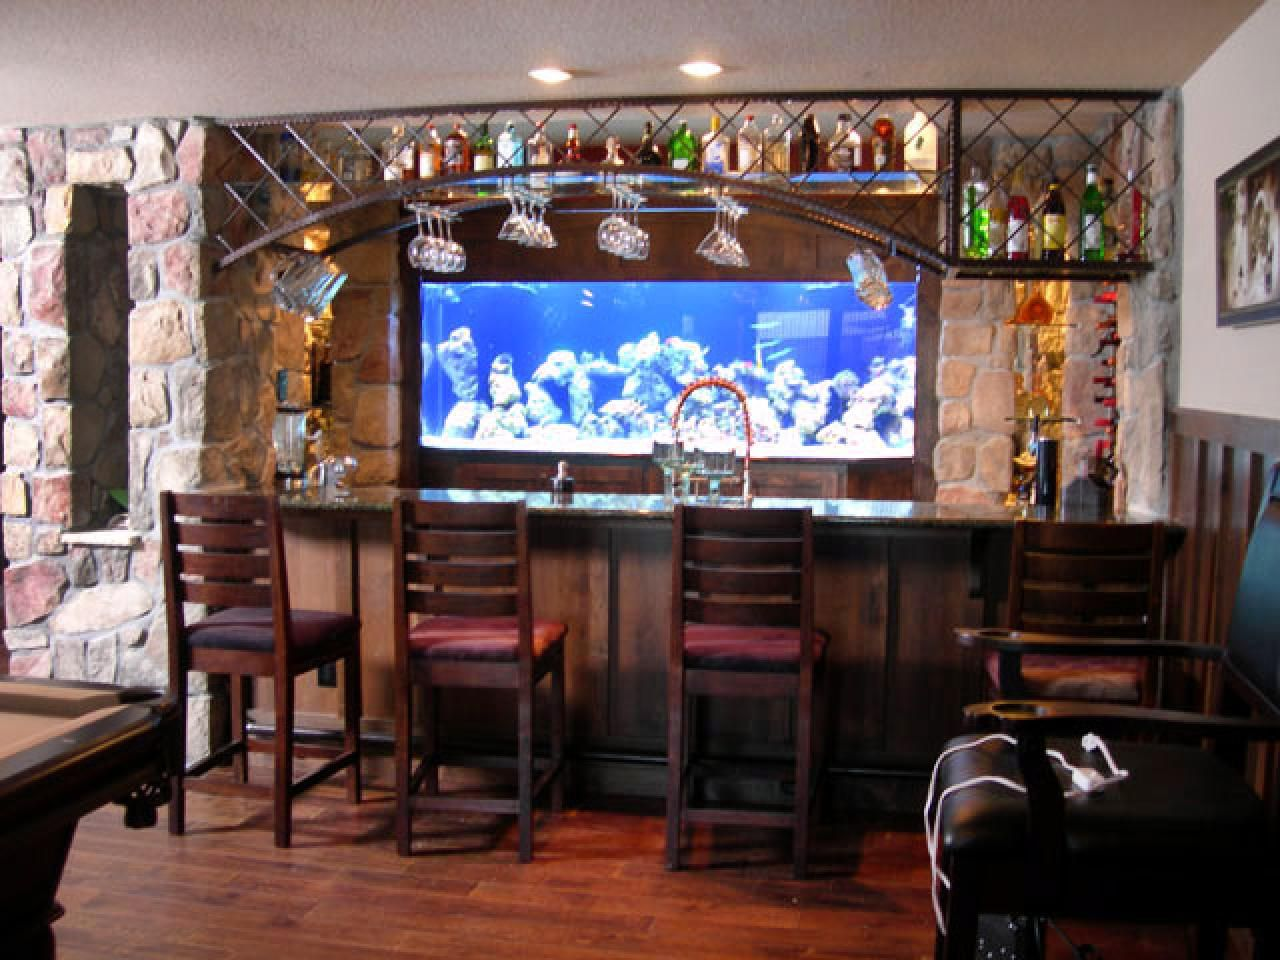 Home bar ideas 89 design options hgtv kitchen design for Home bar designs and ideas